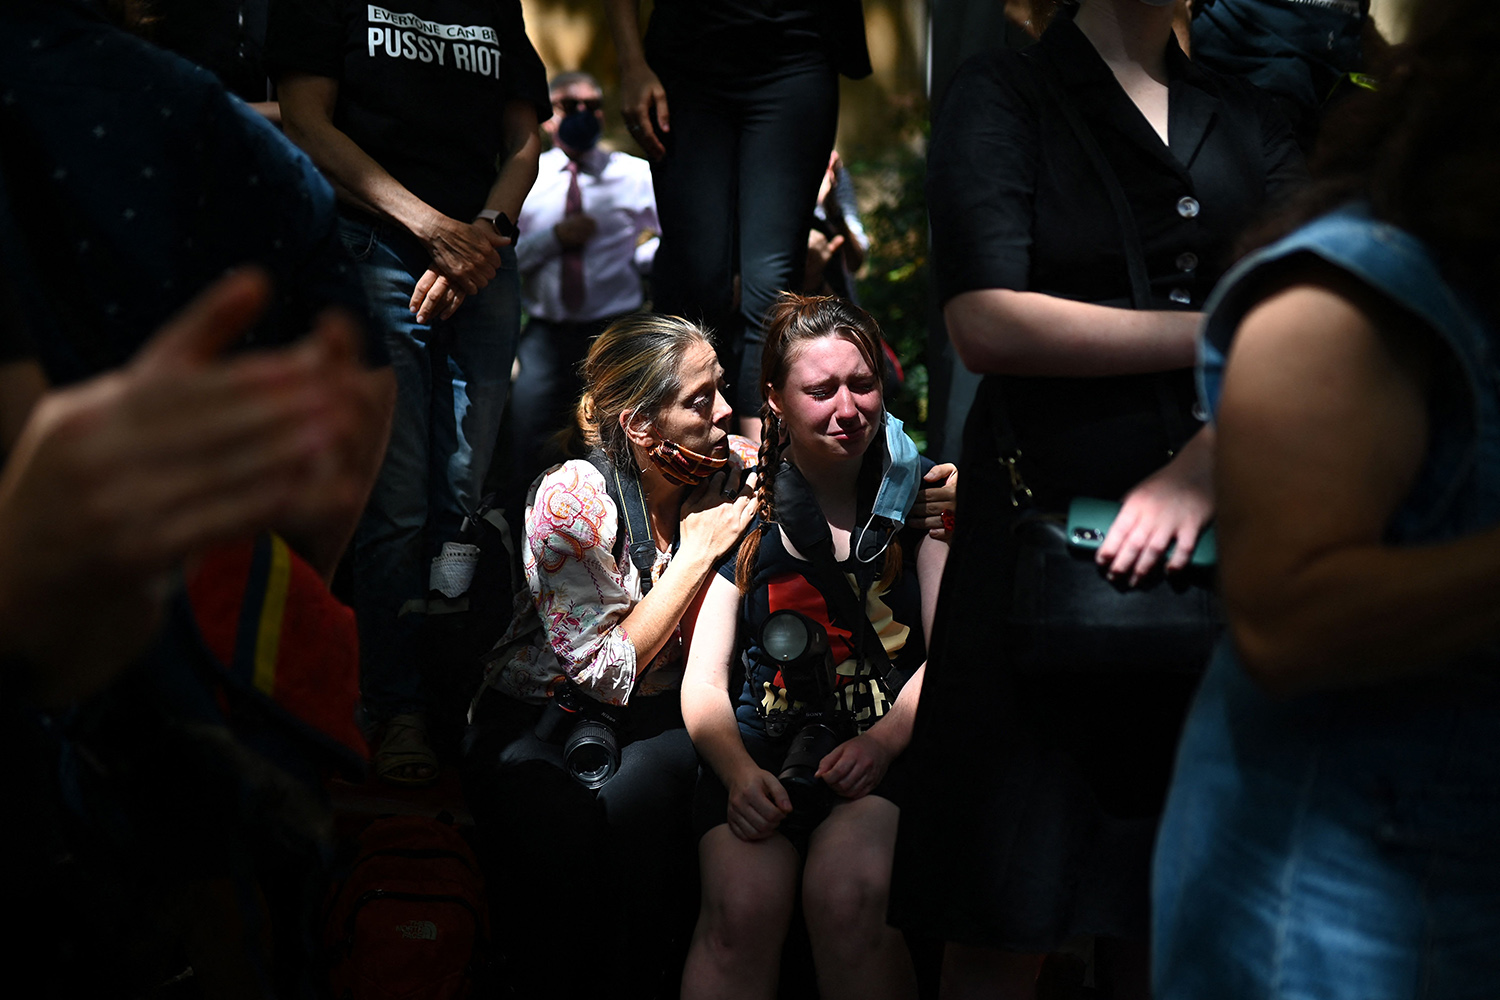 A protester is comforted during a rally against sexual violence and gender inequality in Sydney on March 15. STEVEN SAPHORE/AFP via Getty Images